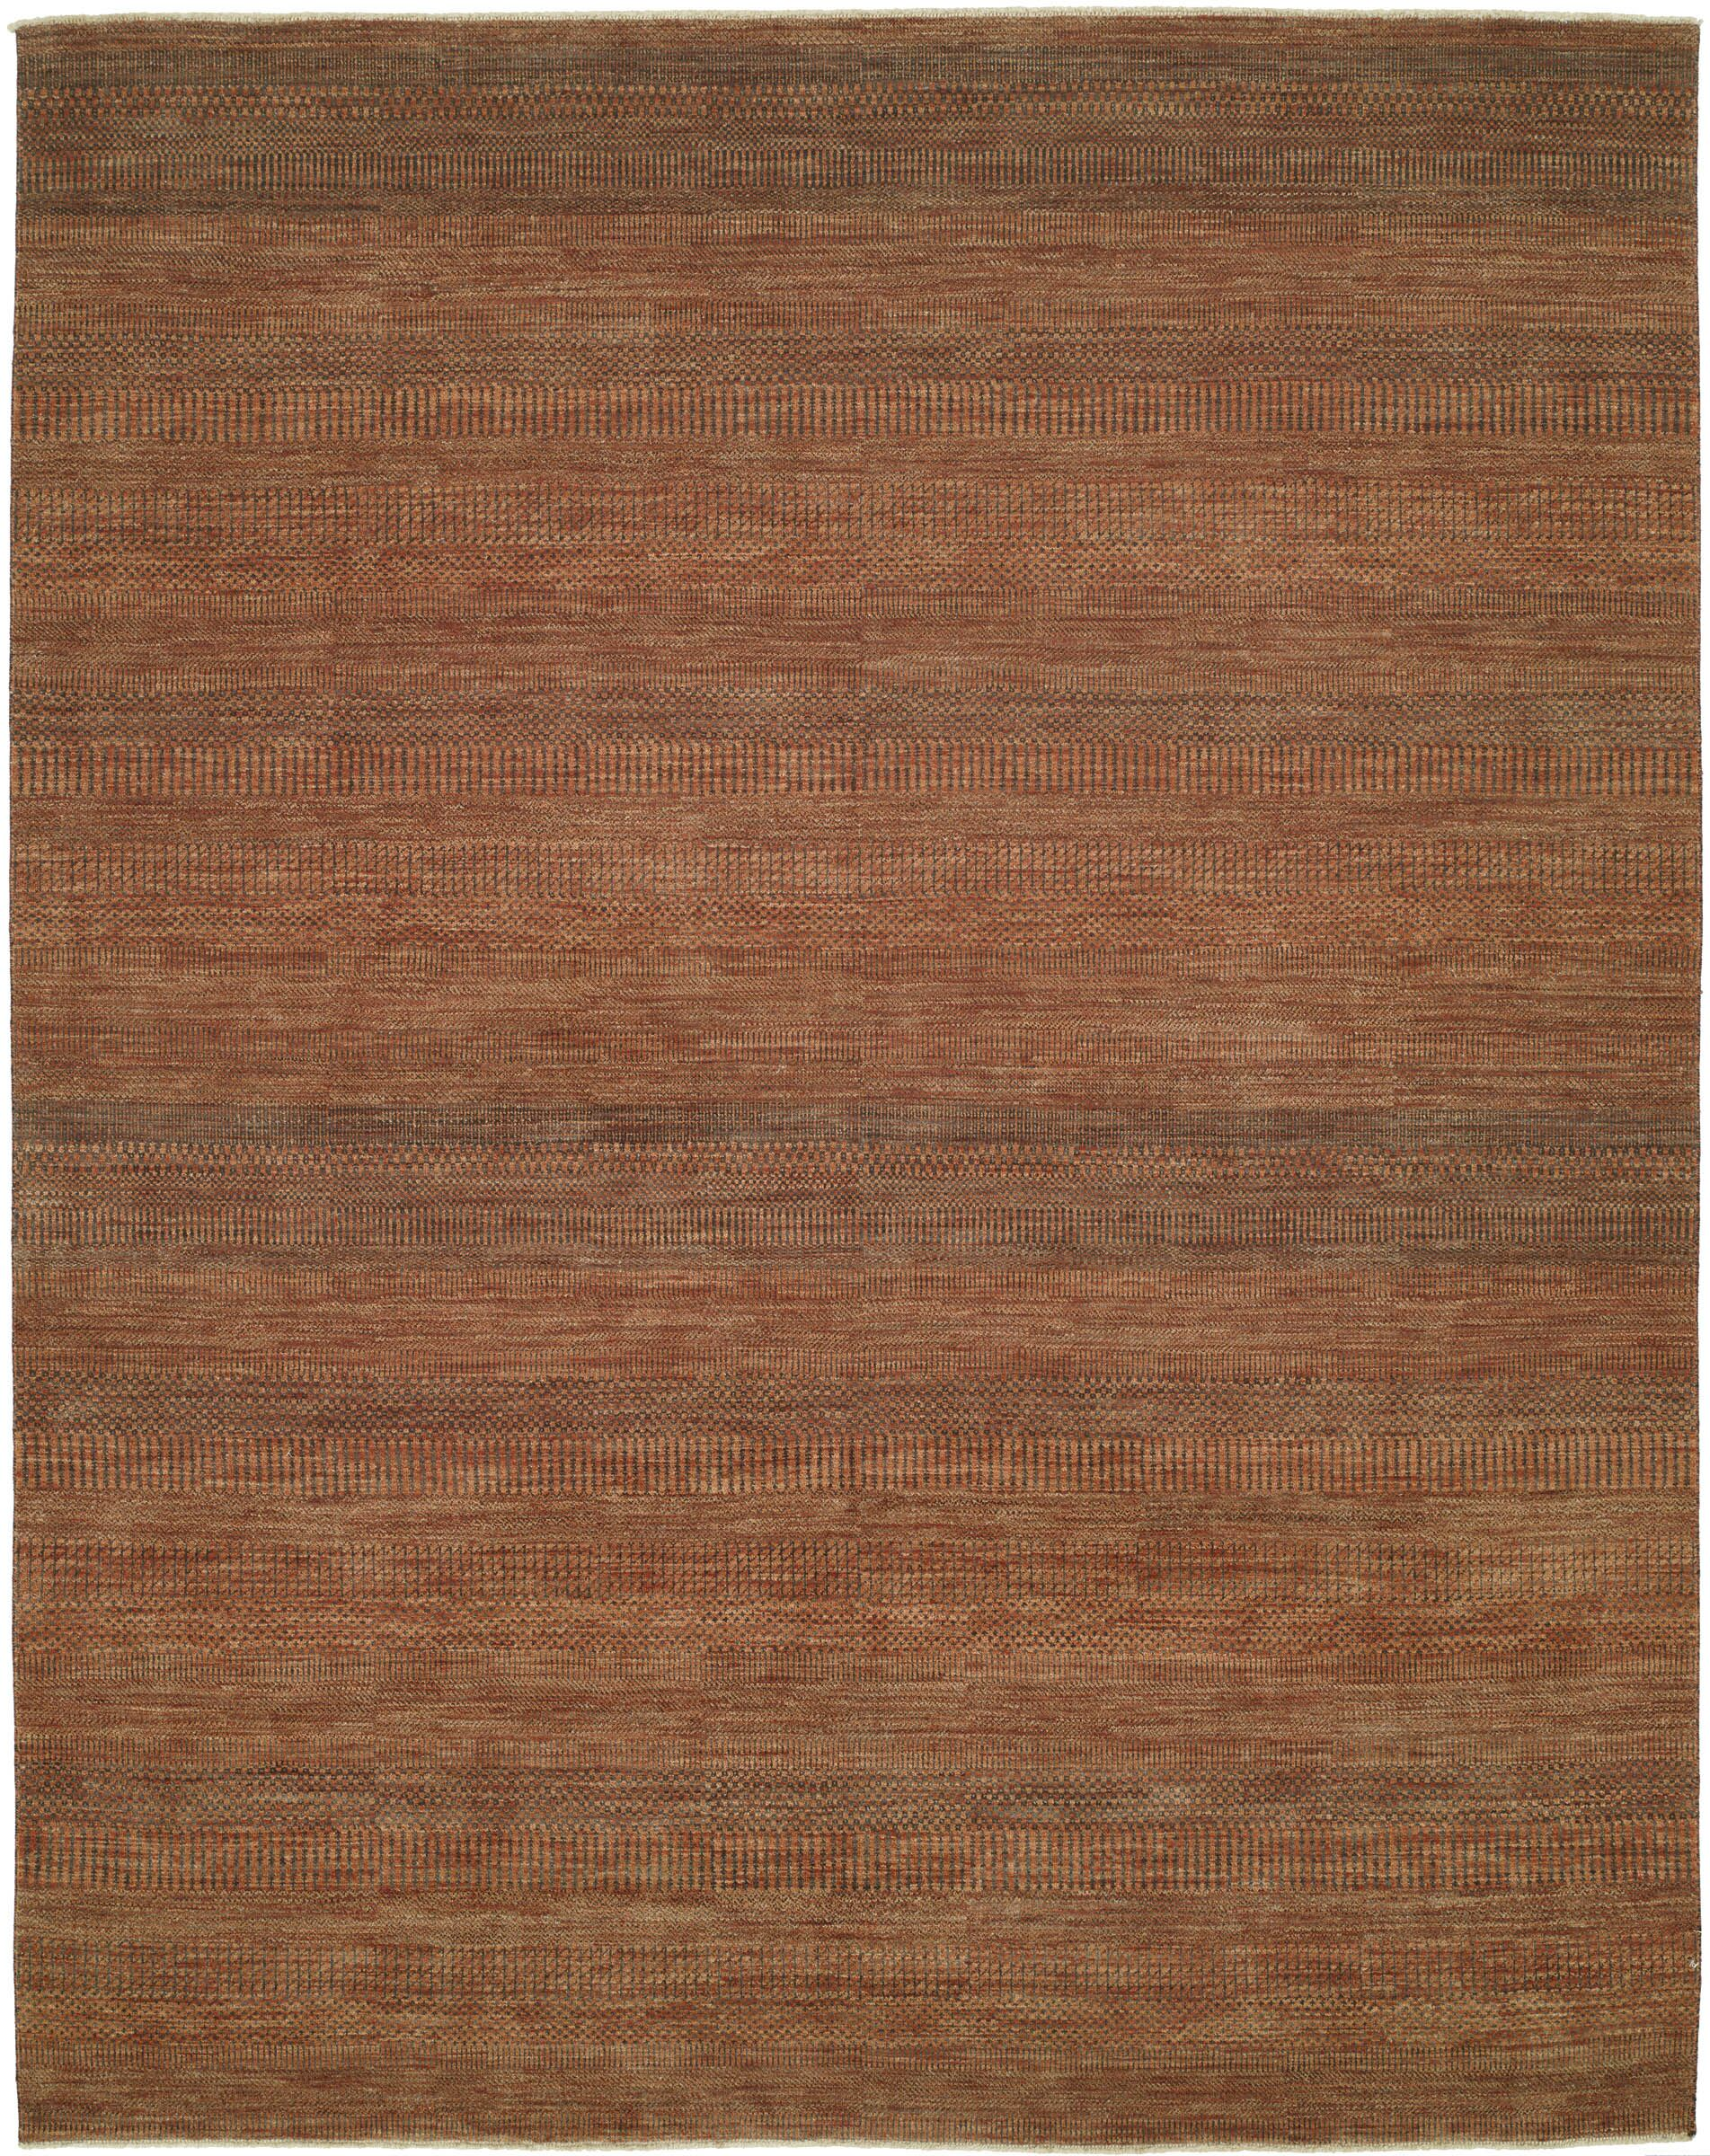 Illusions Rust/Dark Green Area Rug Rug Size: 9' x 12'